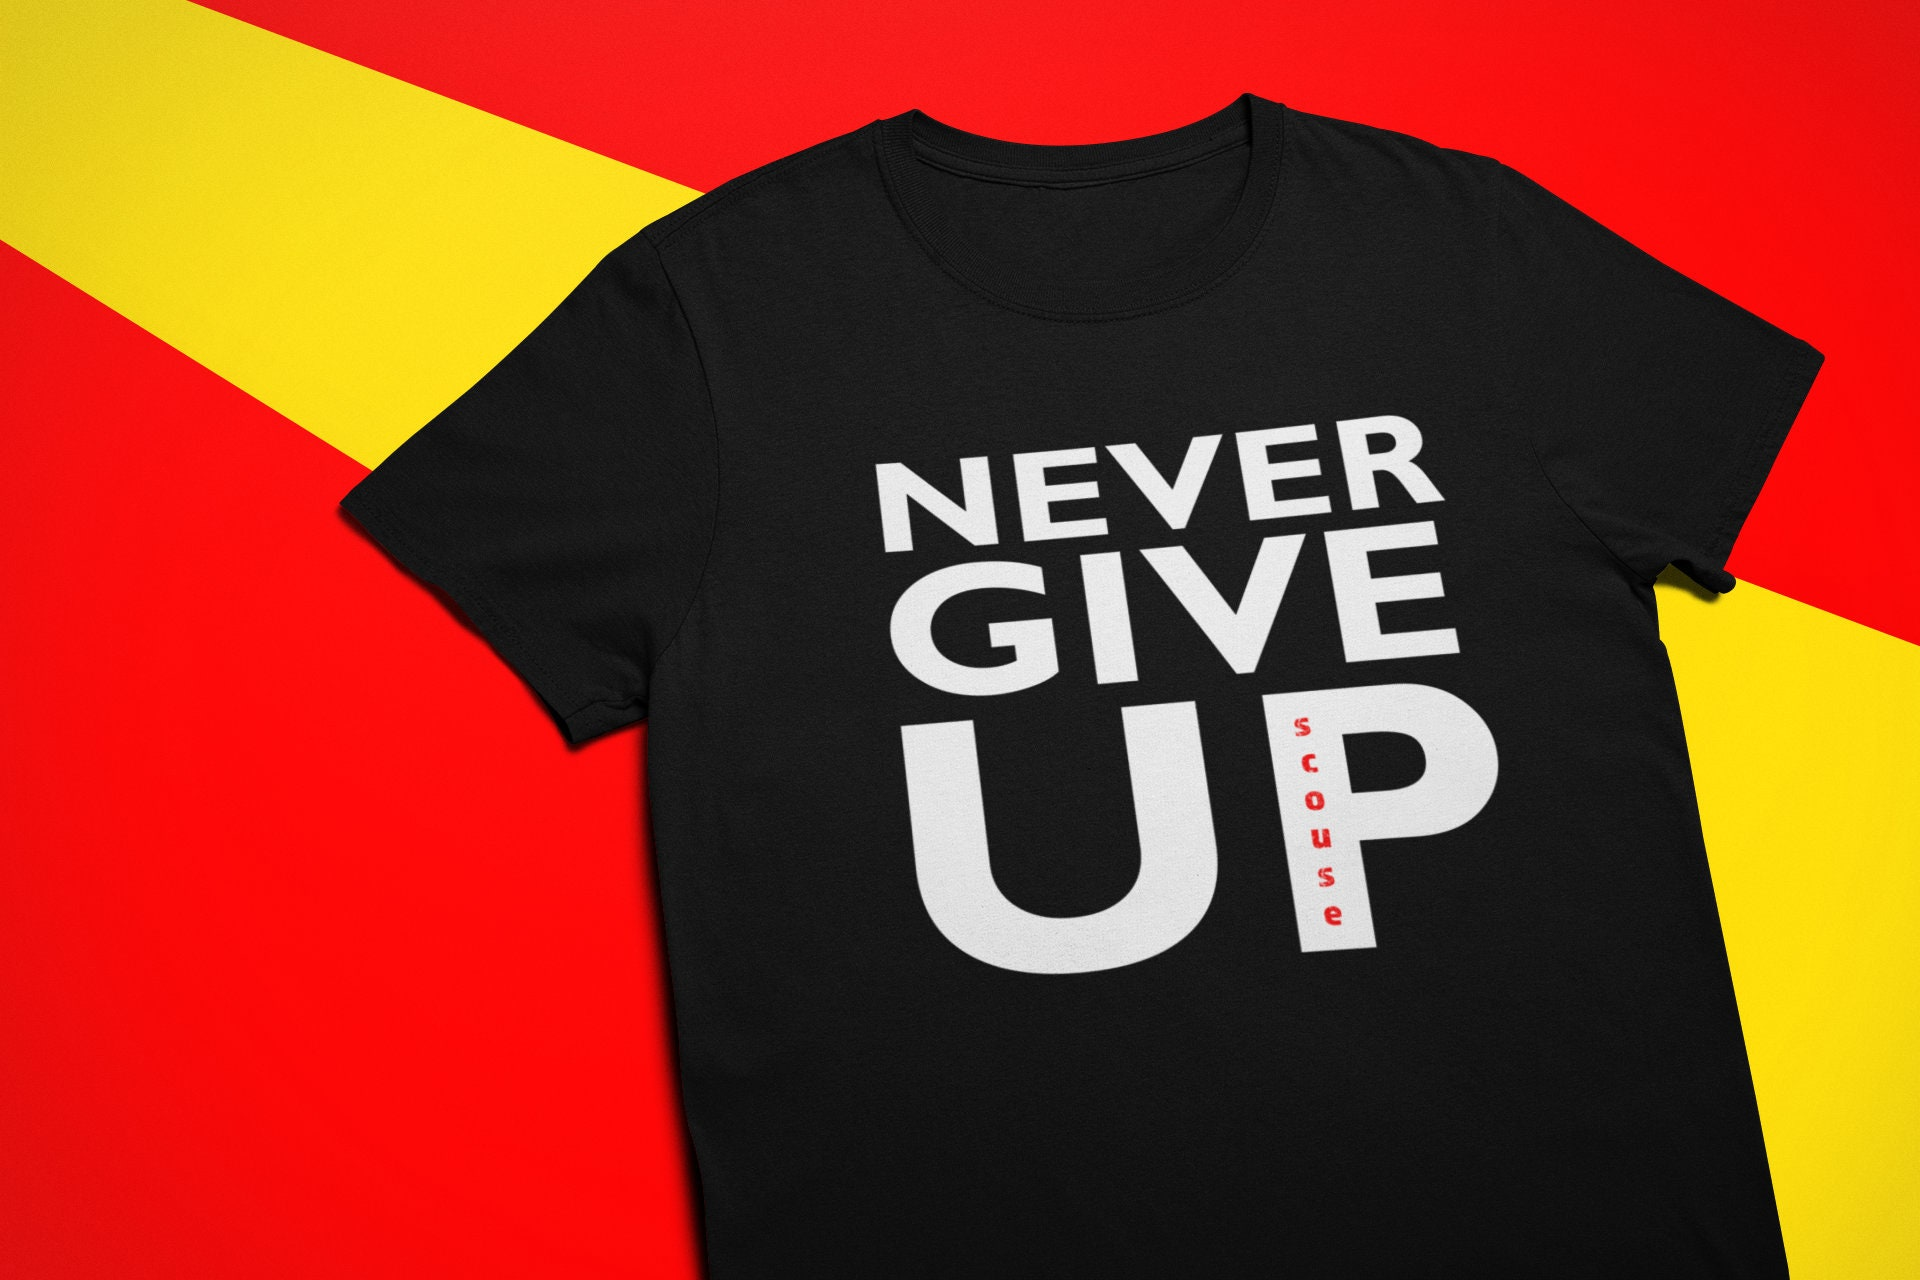 4facad57dcb Liverpool FC T-Shirt Never Give Up Scouse Liverpool Premium T-Shirt for Any  Soccer Occasion LFC Gift Idea You ll Never Walk Alone